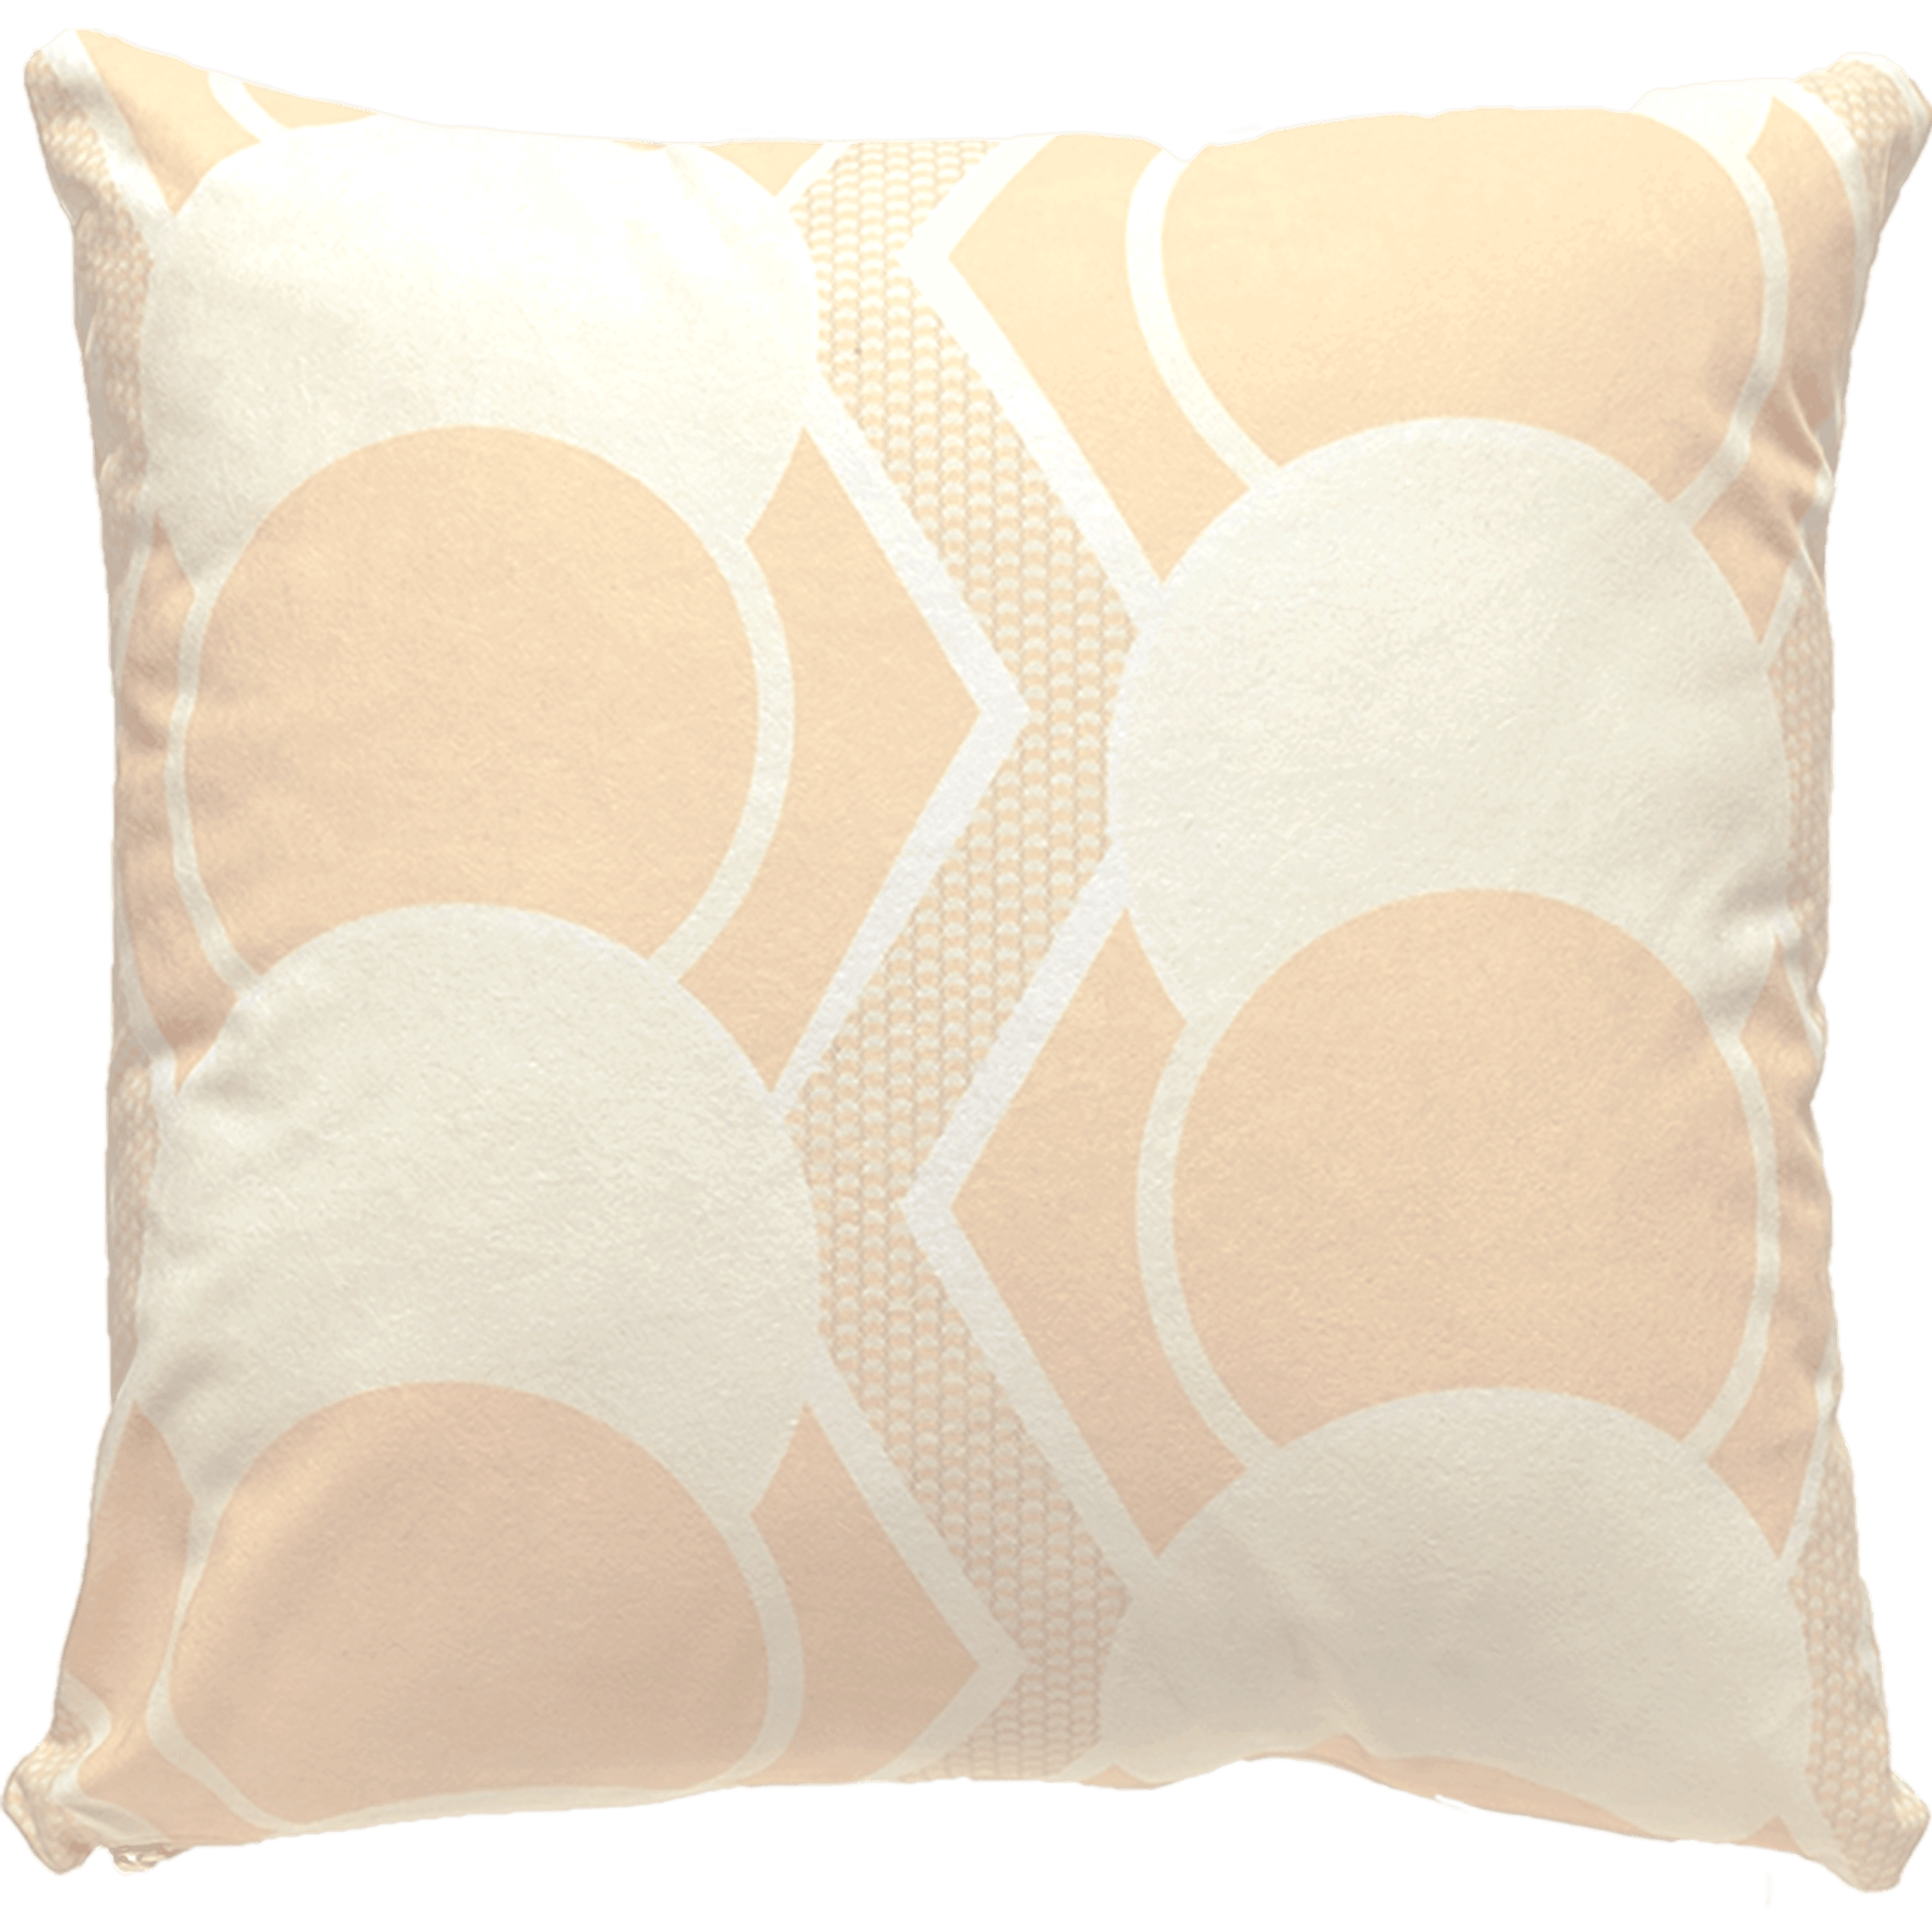 Patterned faux suede white, peach and ivory throw pillow. Cream and peach circles outlined in white. Snakeskin pattern in between circles.